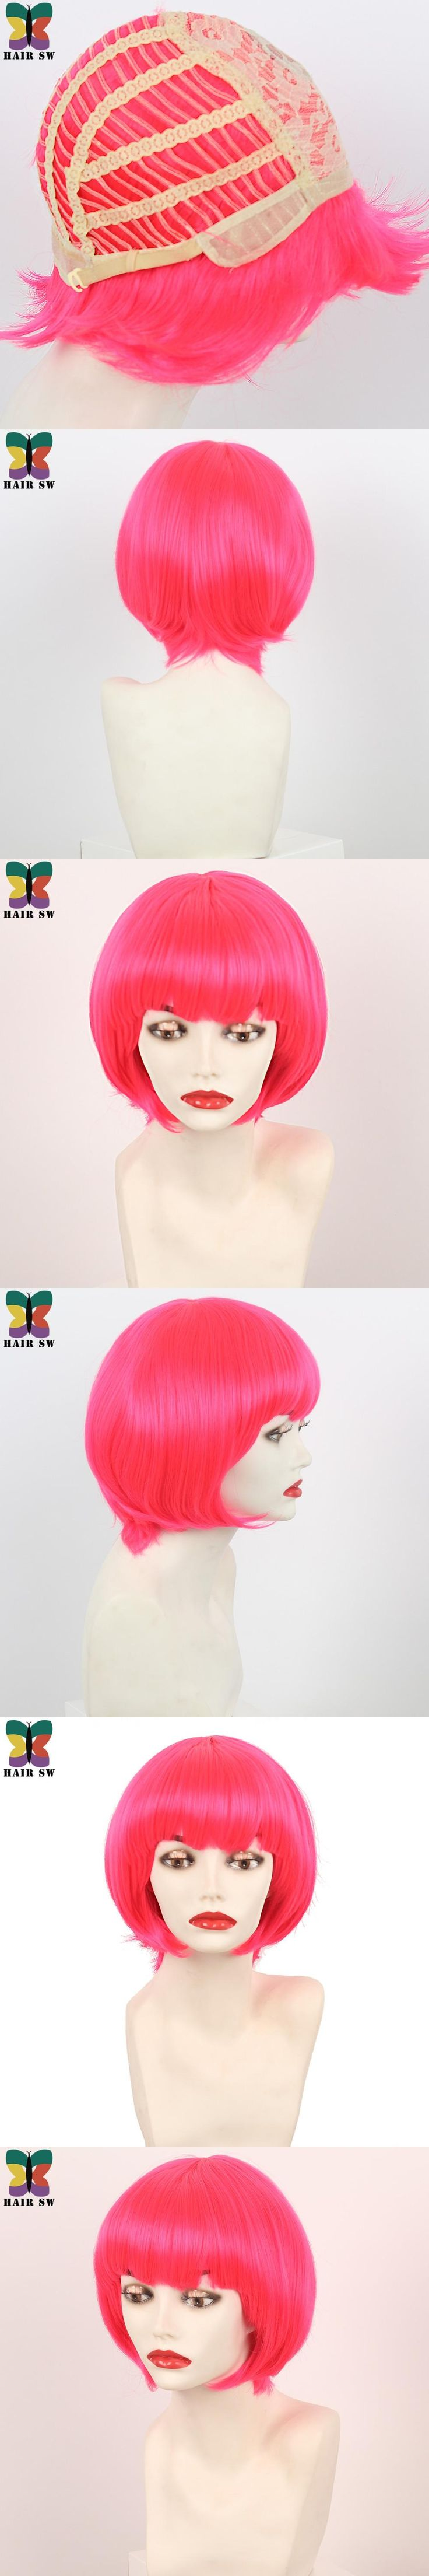 Short Hot Pink Bobs Wig Synthetic Cosplay With Bangs Halloween Wig Candy Girl For Party Bonbons!!!High Temperature Fiber HAIR SW